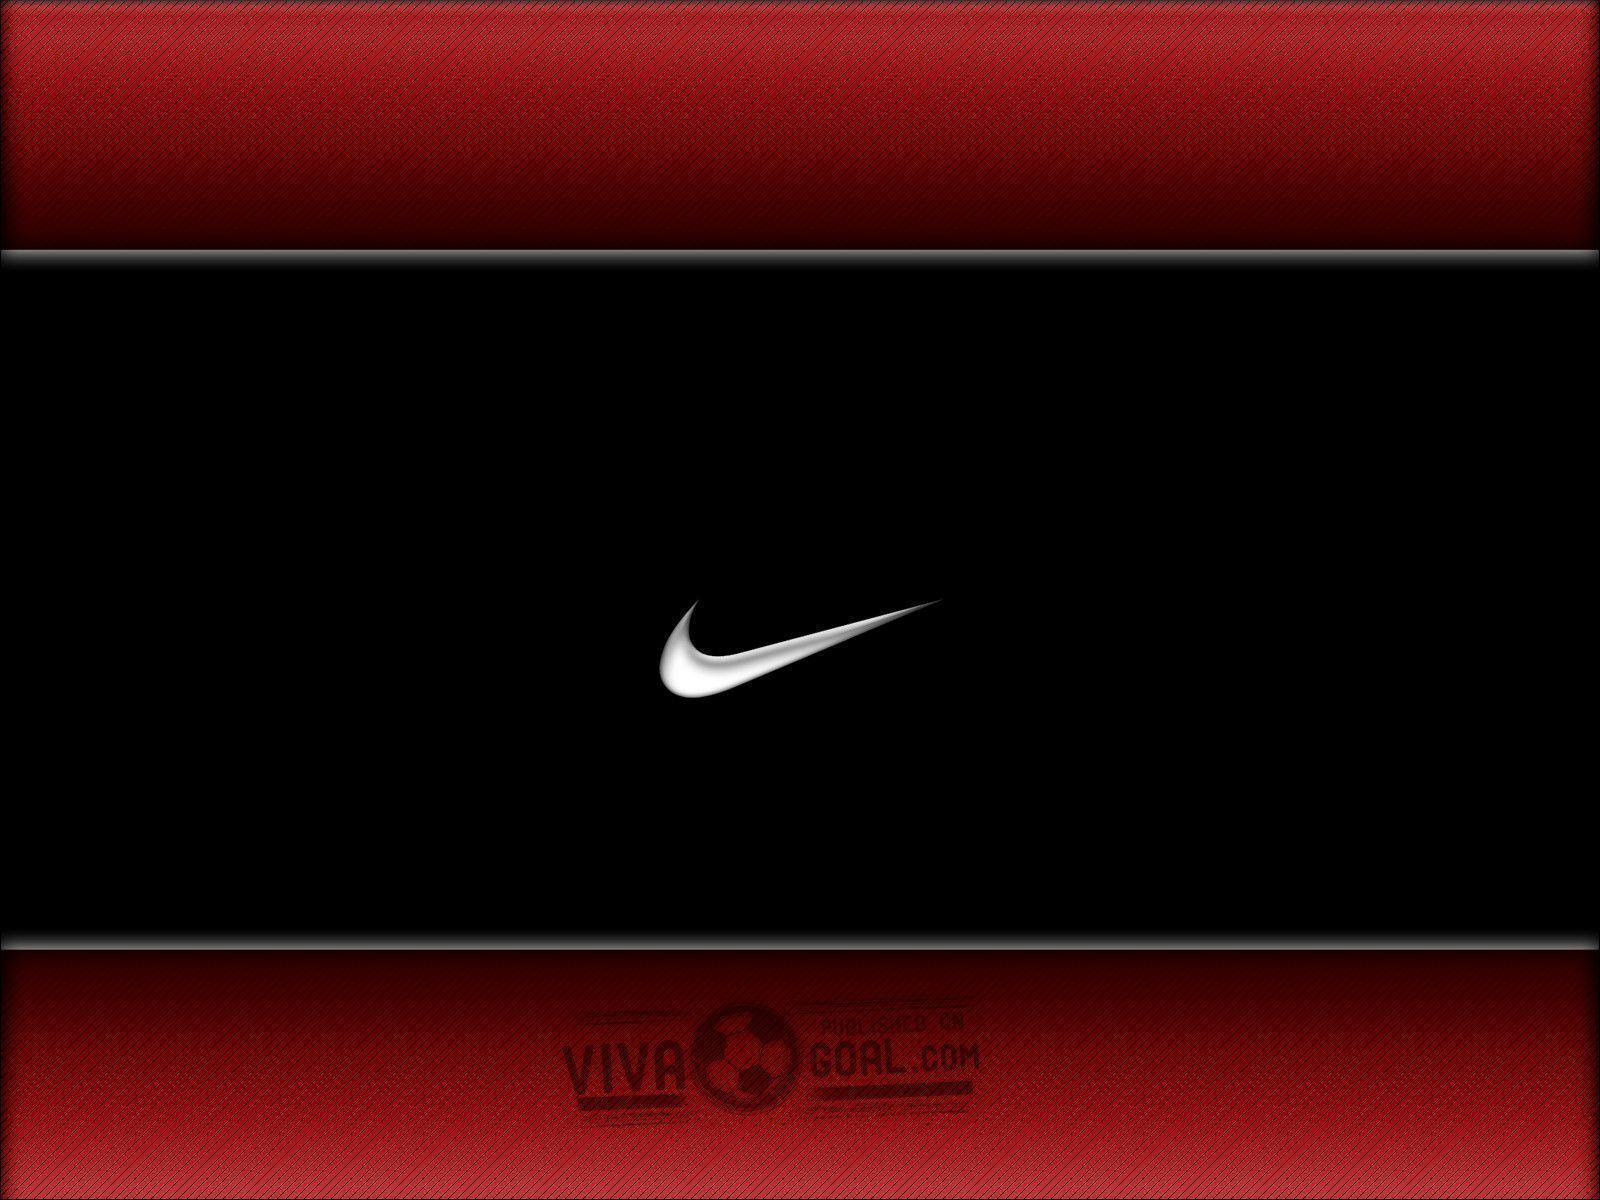 Nike Wallpapers Download